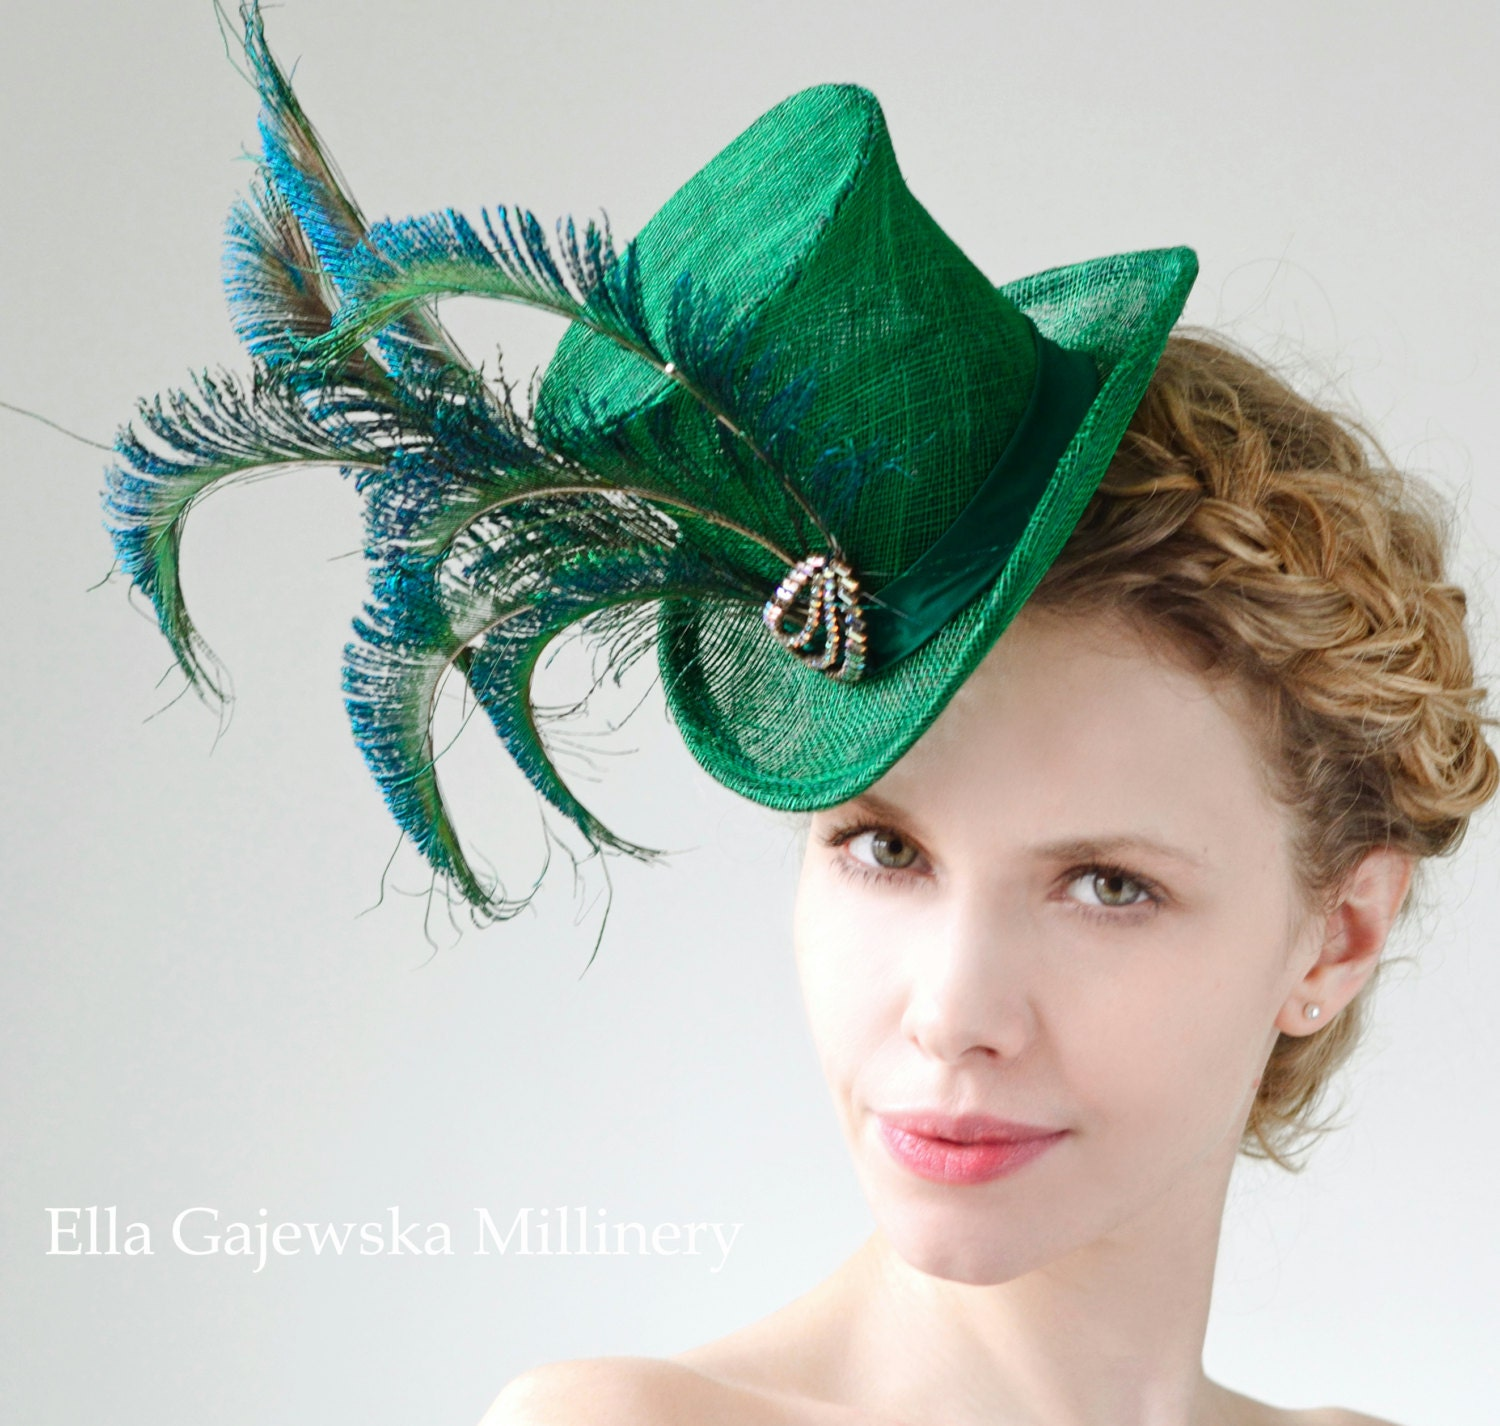 Emerald-Green-Mini-Straw-Elegant-Top-Hat-Peacock-Feathers-Accessories-Wedding-Accessory-Wear-Party-Fascinator-Derby-Hats-Ascot-Steampunk - EllaGajewskaHATS